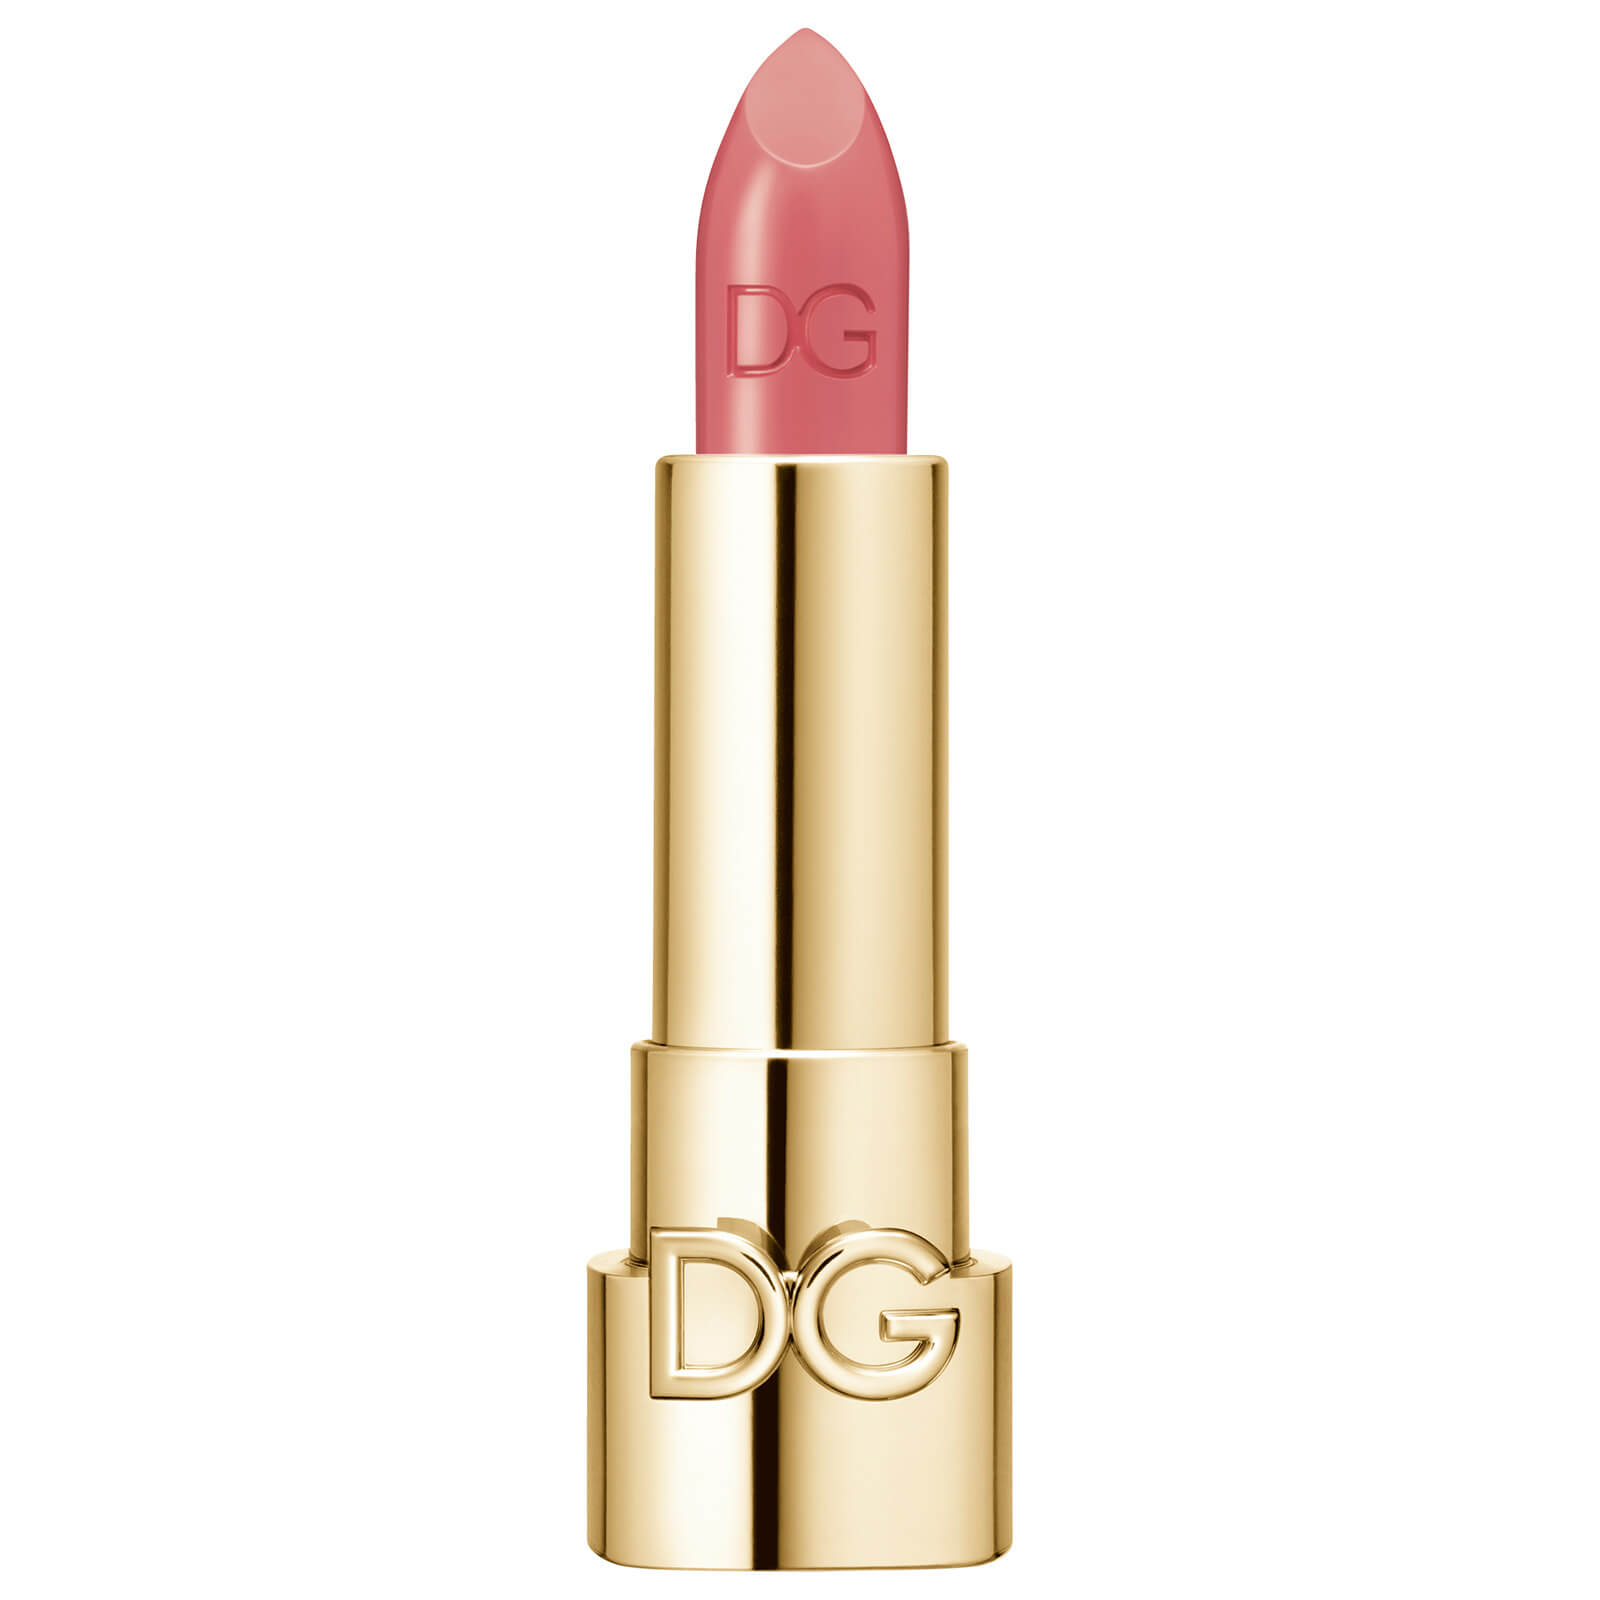 Купить Dolce&Gabbana The Only One Lipstick 1.7g (No Cap) (Various Shades) - 140 Lovely Tan